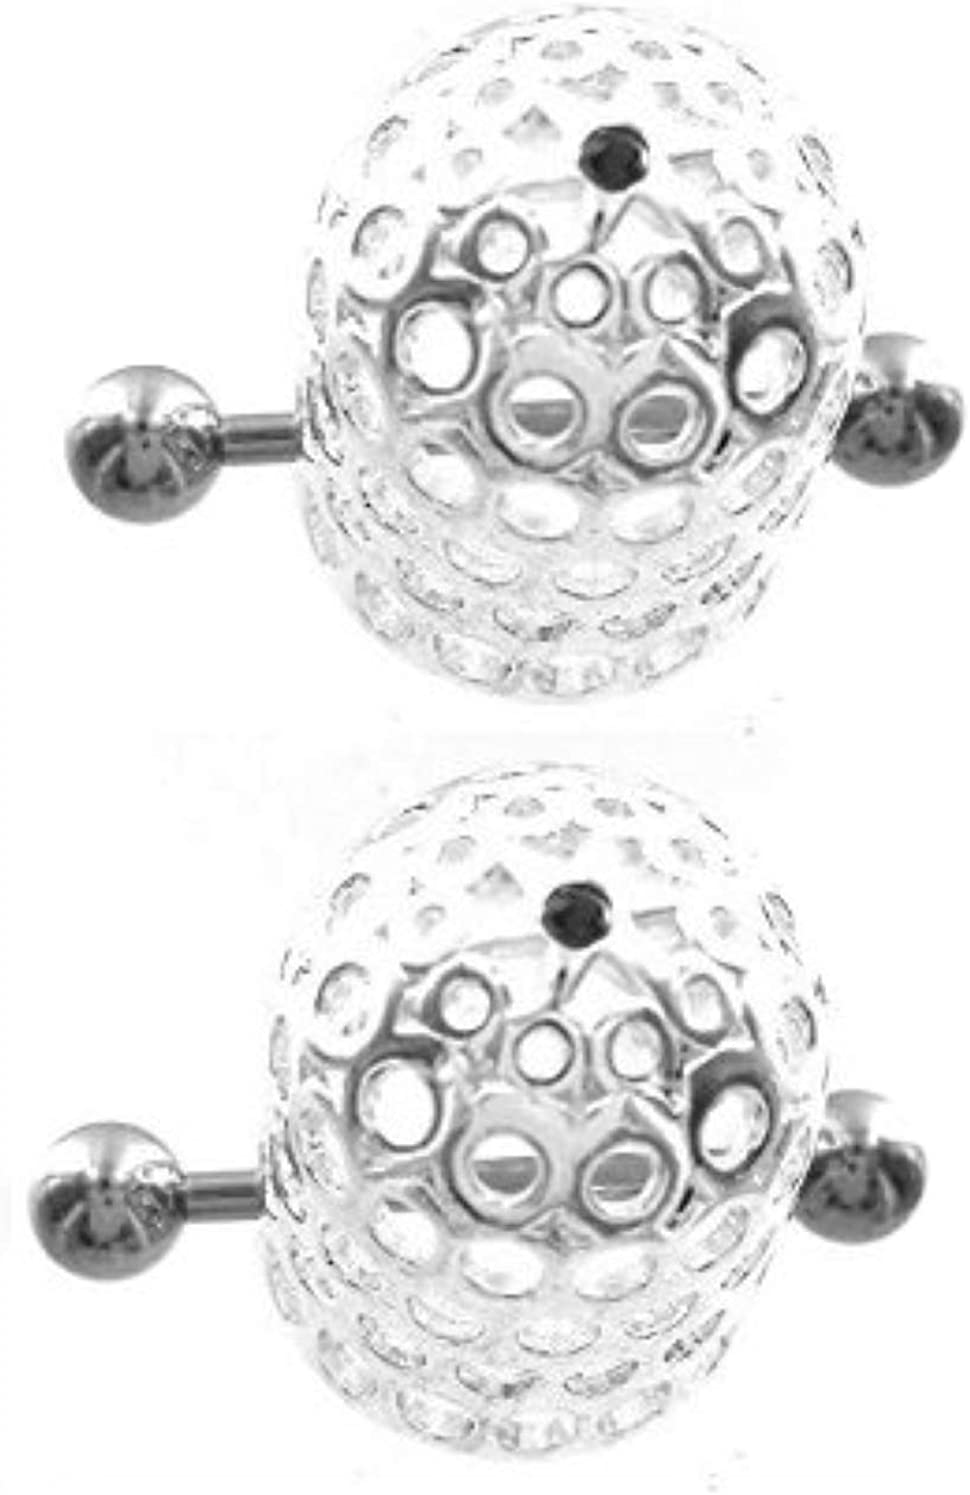 Body Accentz Nipple Ring Bars 14g 5/8'' by 3/4'' timble Style Nipple Ring Barbell